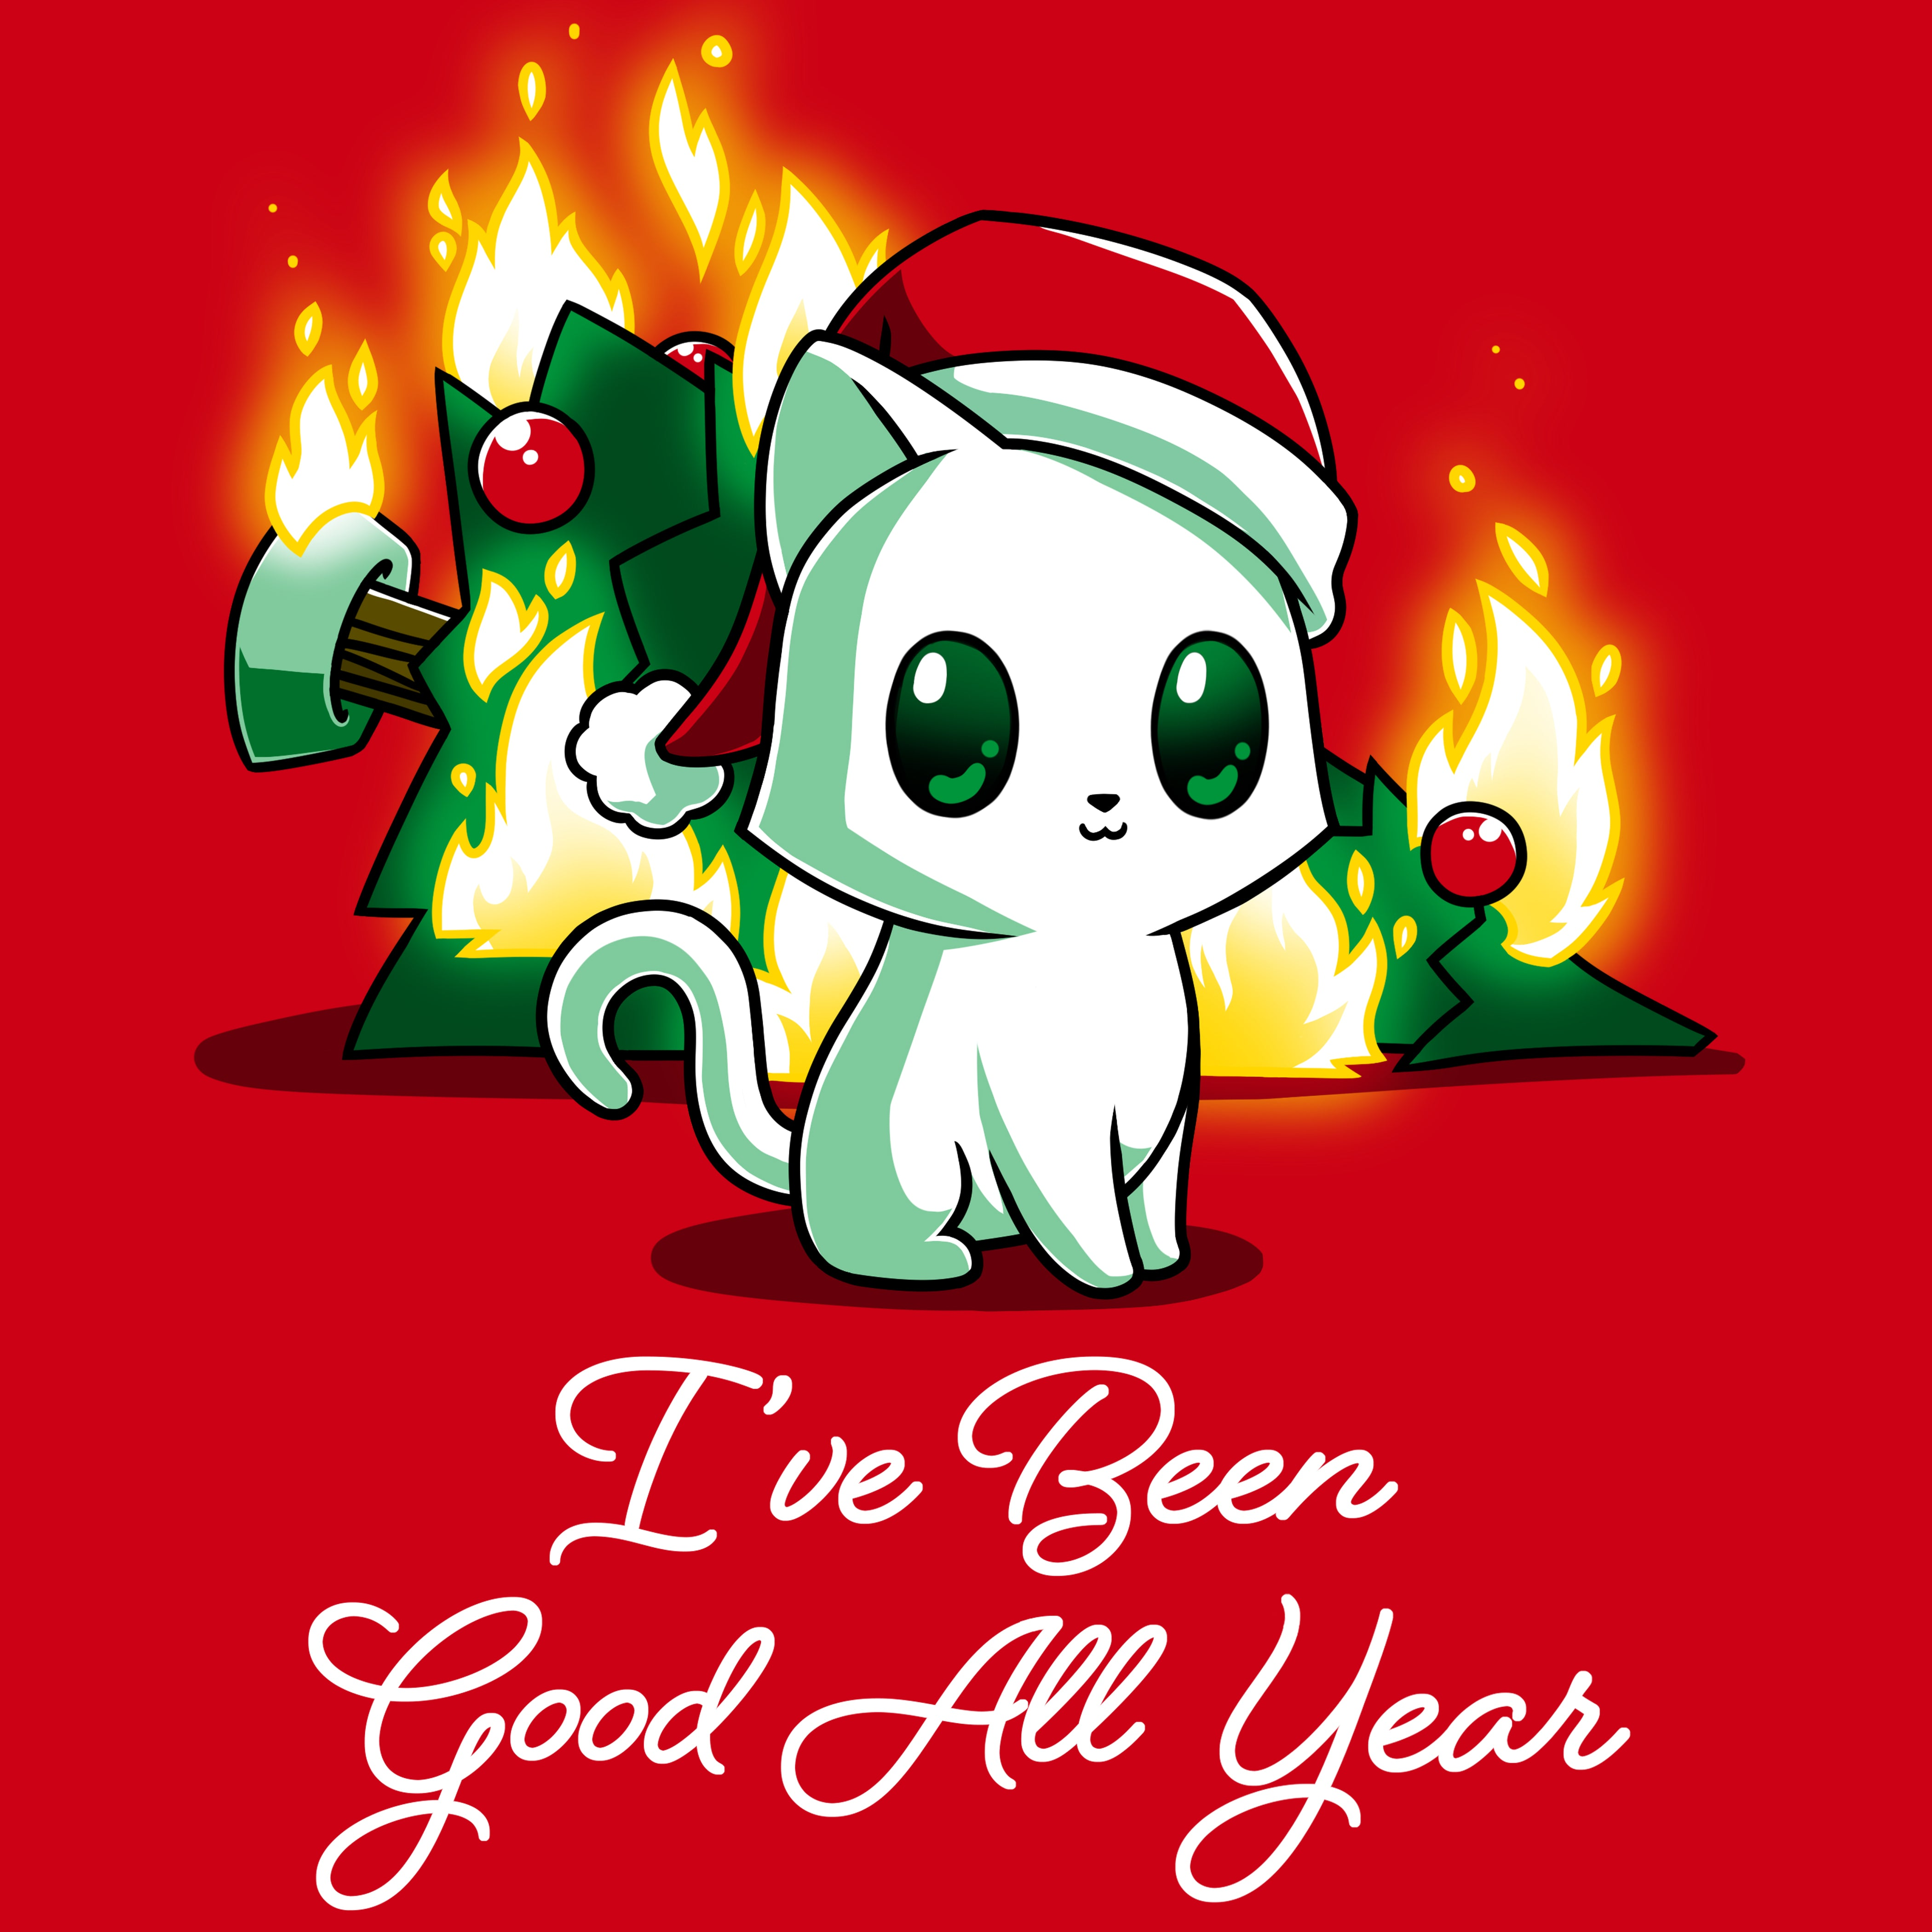 I've Been Good All Year T-Shirt TeeTurtle Red shirt with cat wearing a Santa hat and a flaming Christmas tree in the background